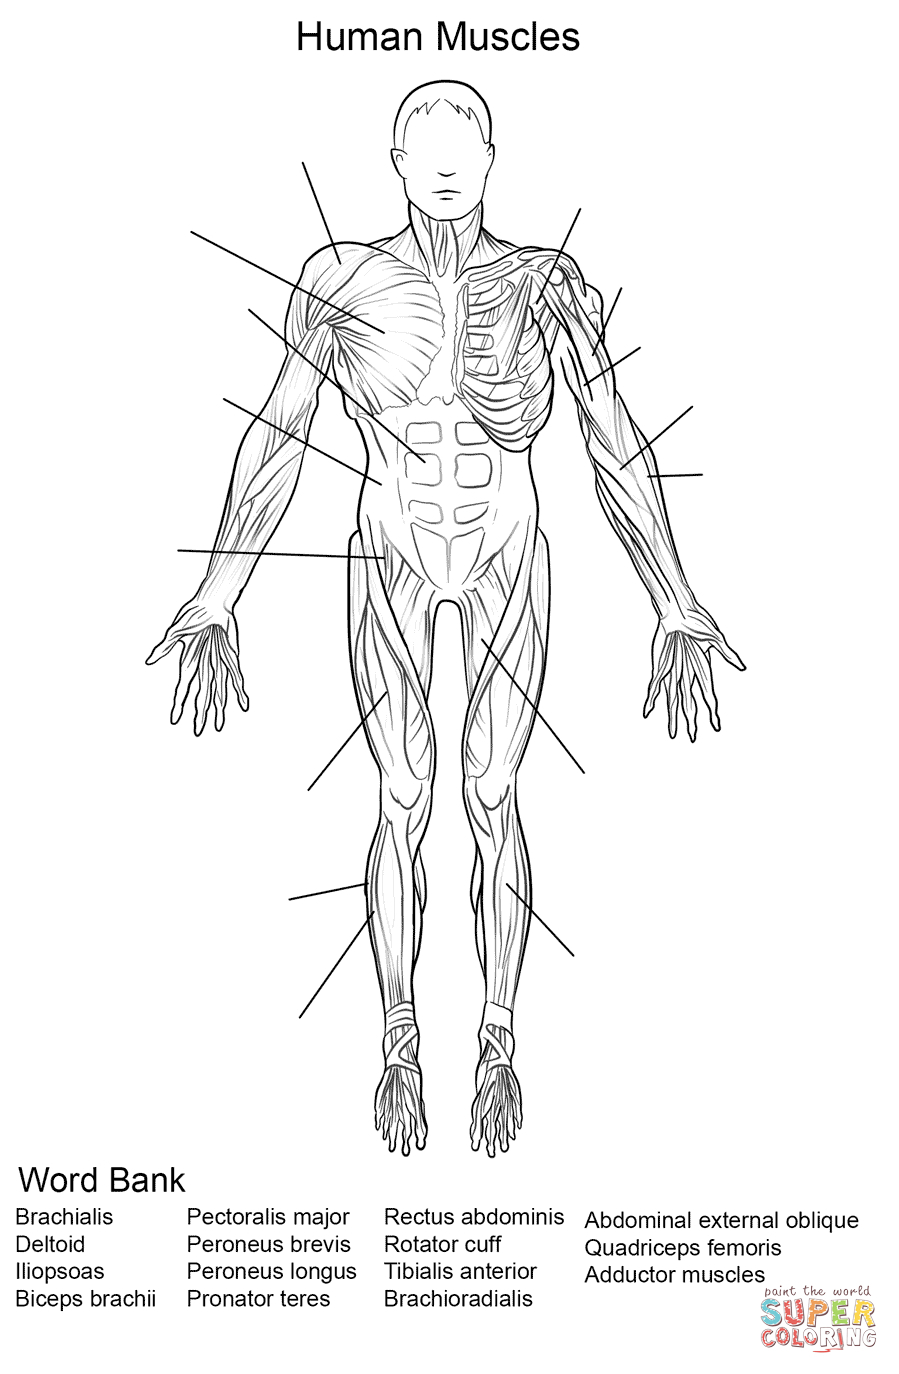 Human Muscles Front View Worksheet Coloring Page | Free Printable | Free Printable Human Anatomy Worksheets